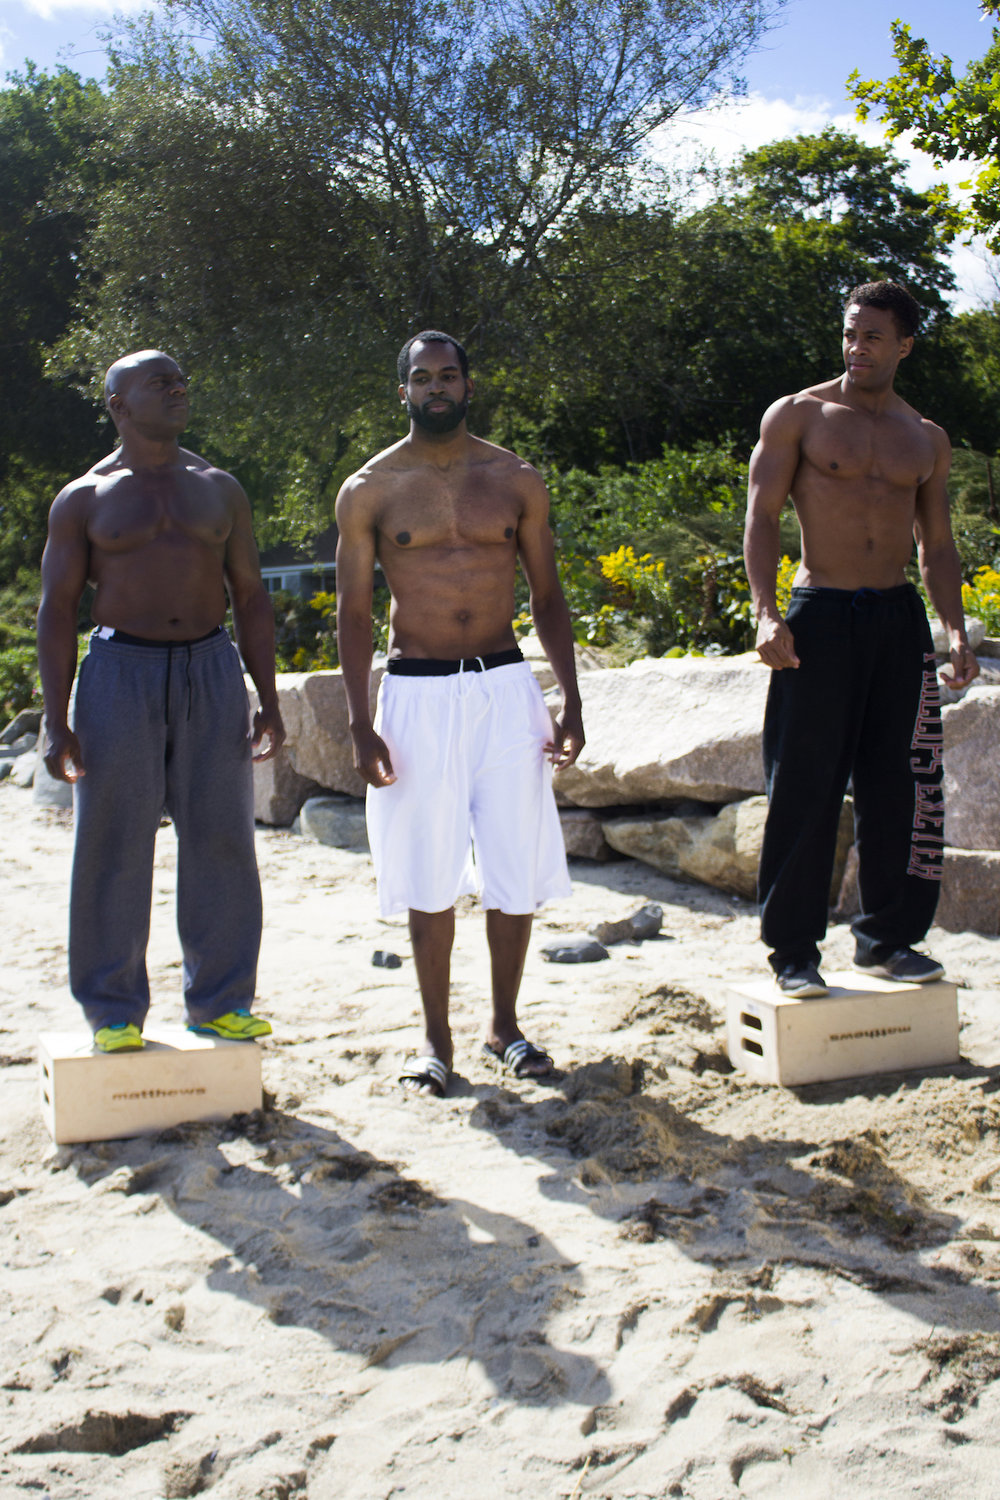 Actors Kevin O. Peterson, Reggie Joseph and Sean Brown on the set of Geena Matuson's production 'Fauxmercials' beach ads, September 2016.